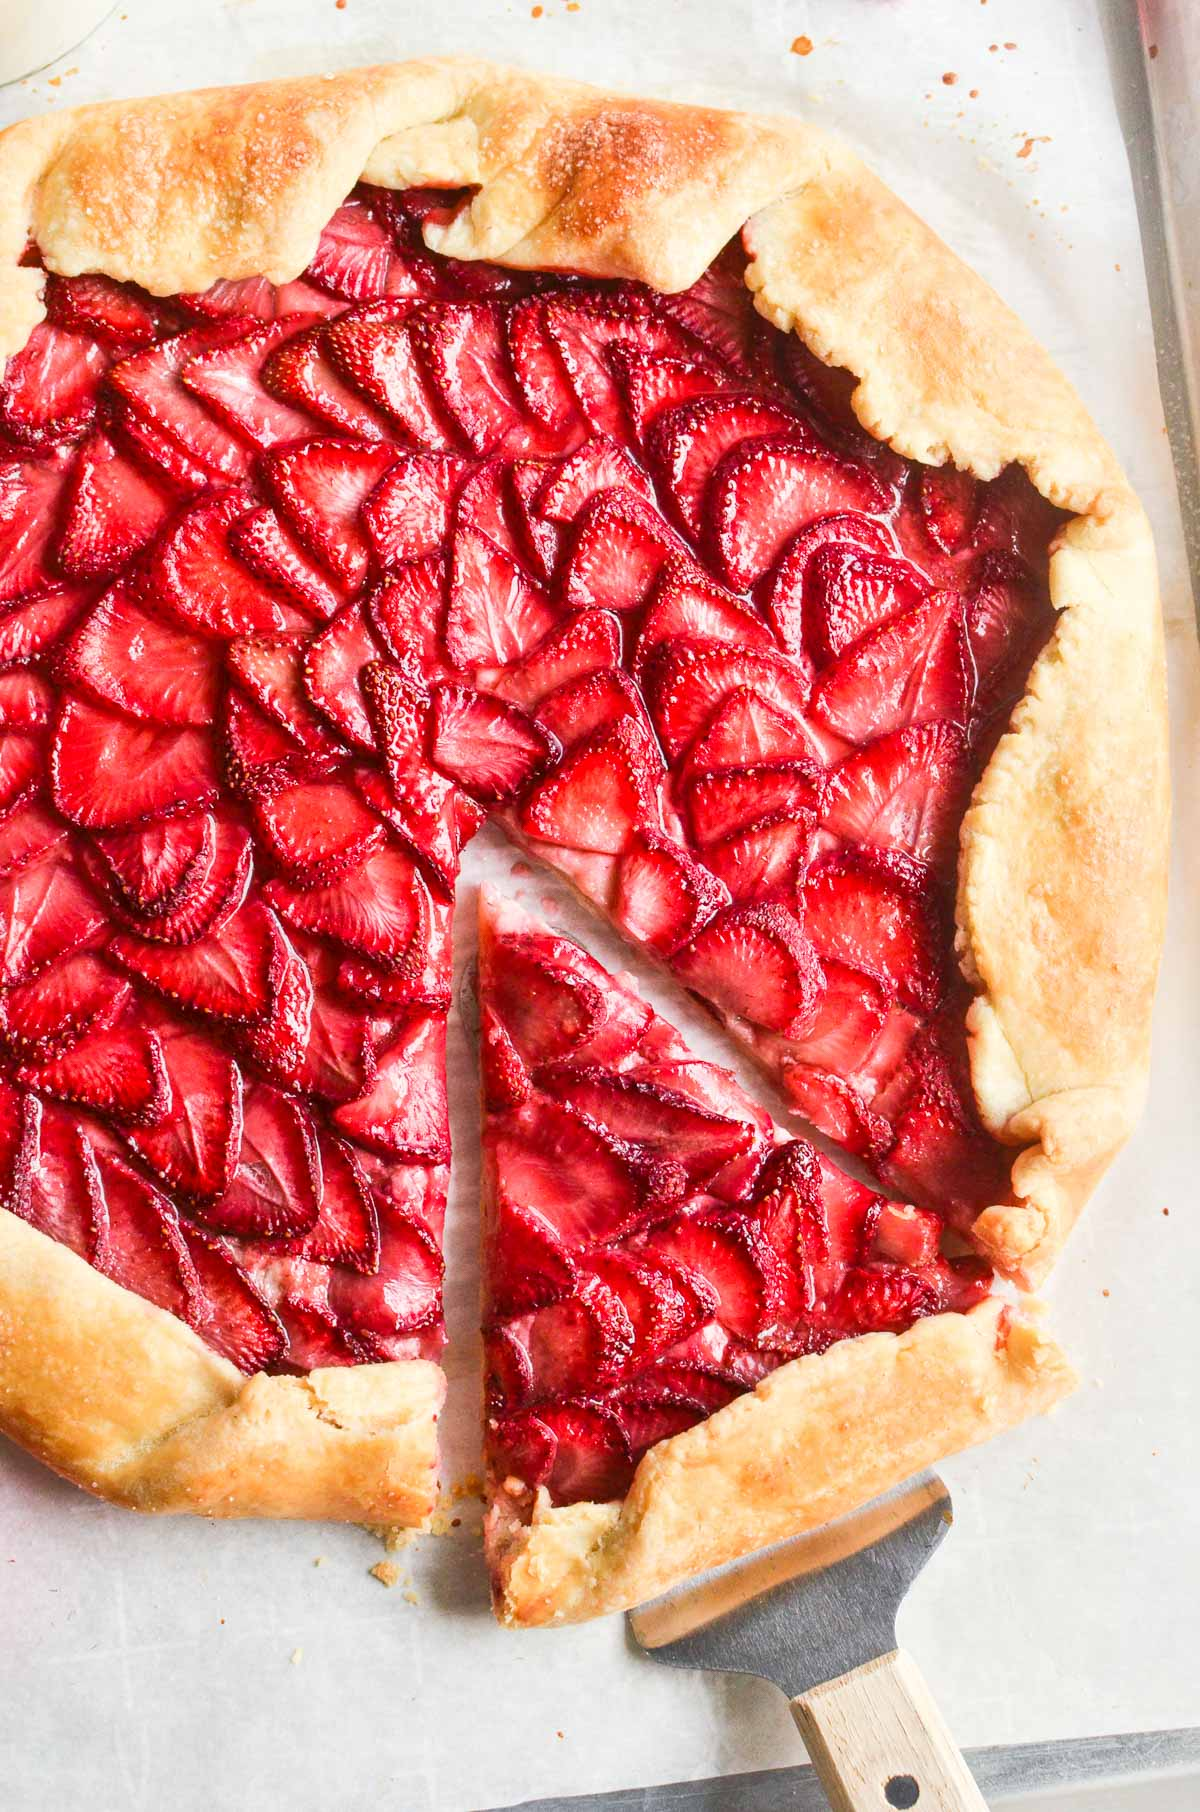 Removing a slice of bright pink strawberry galette